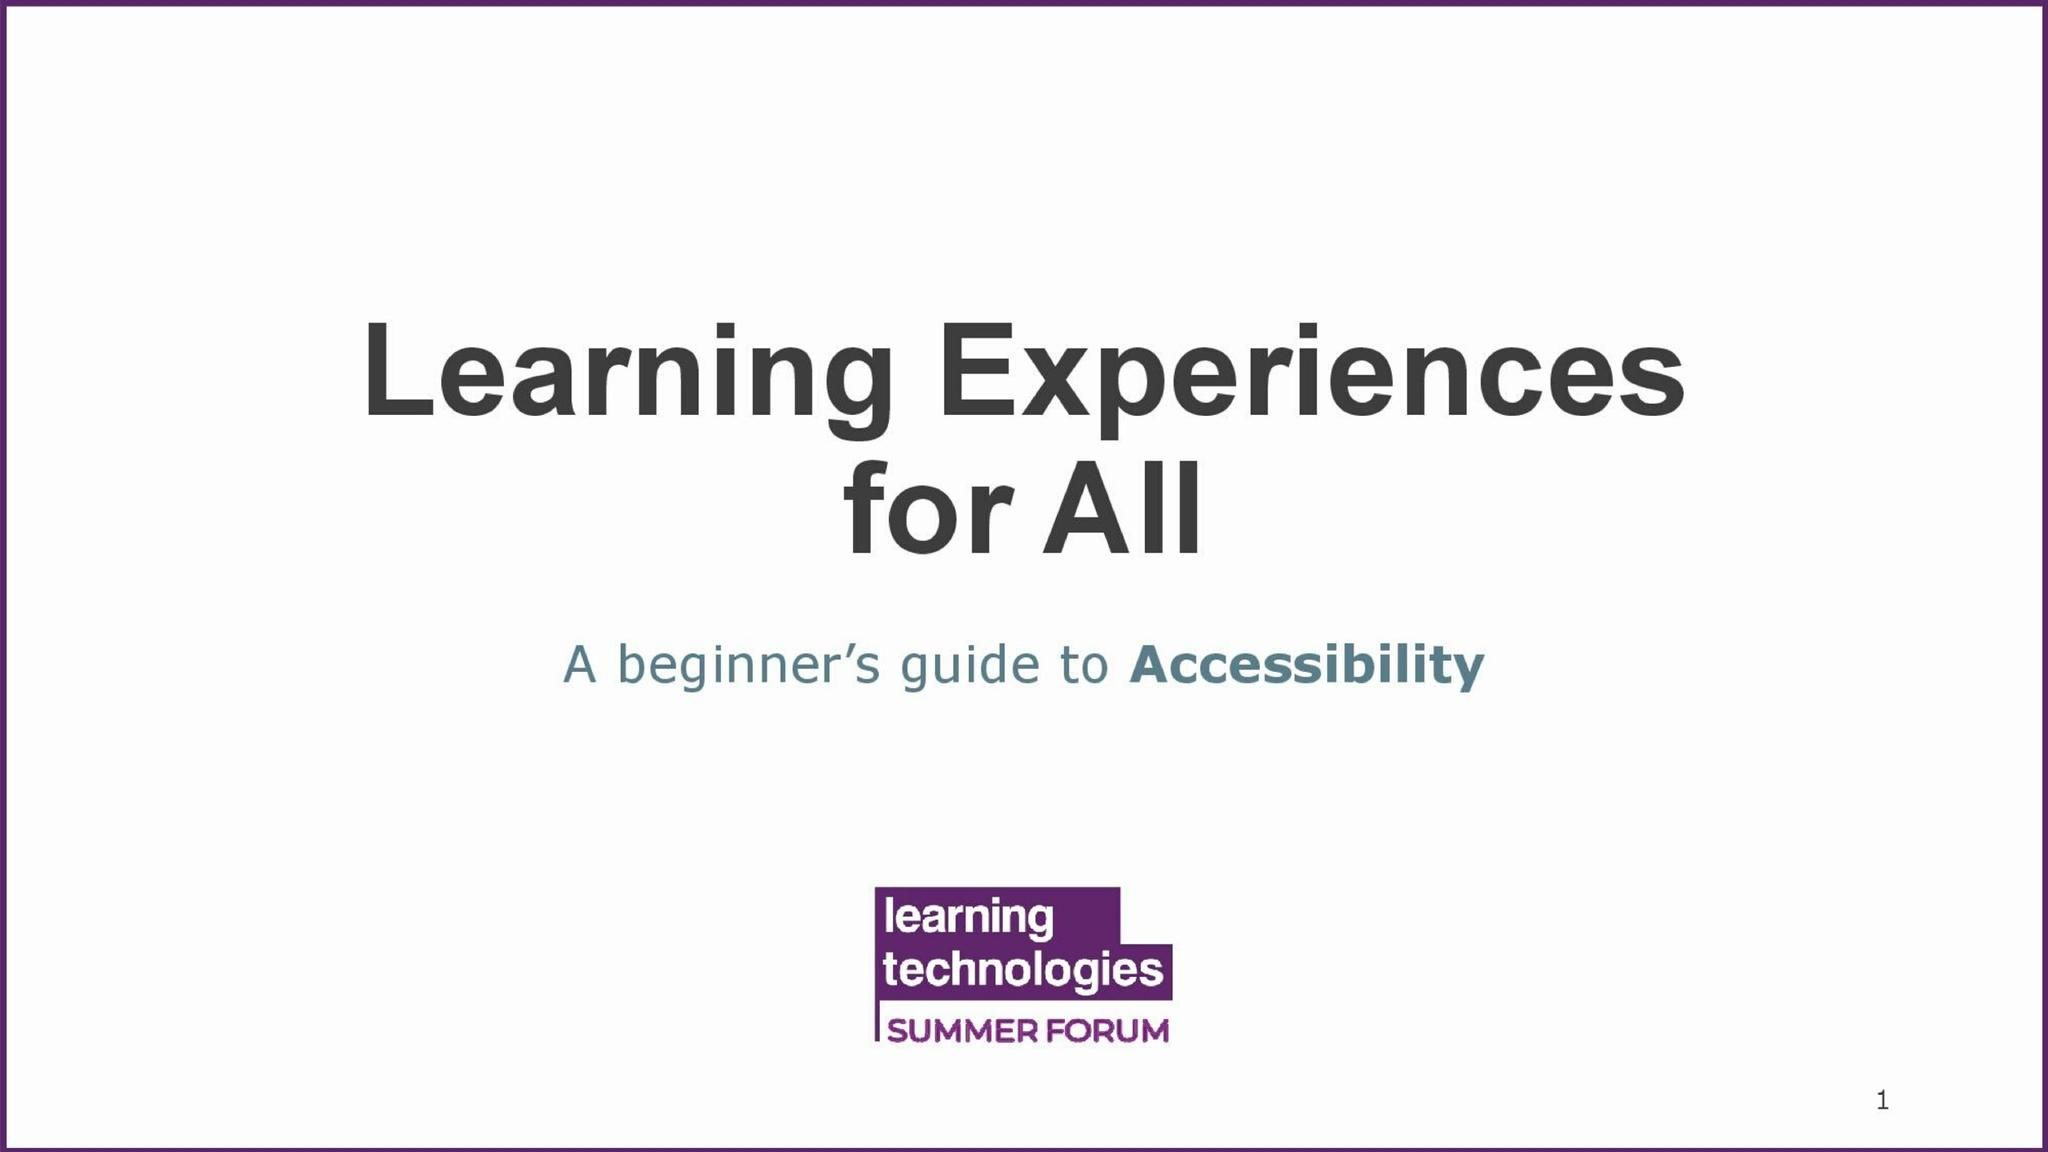 Learning experiences for all: A beginner's guide to accessibility